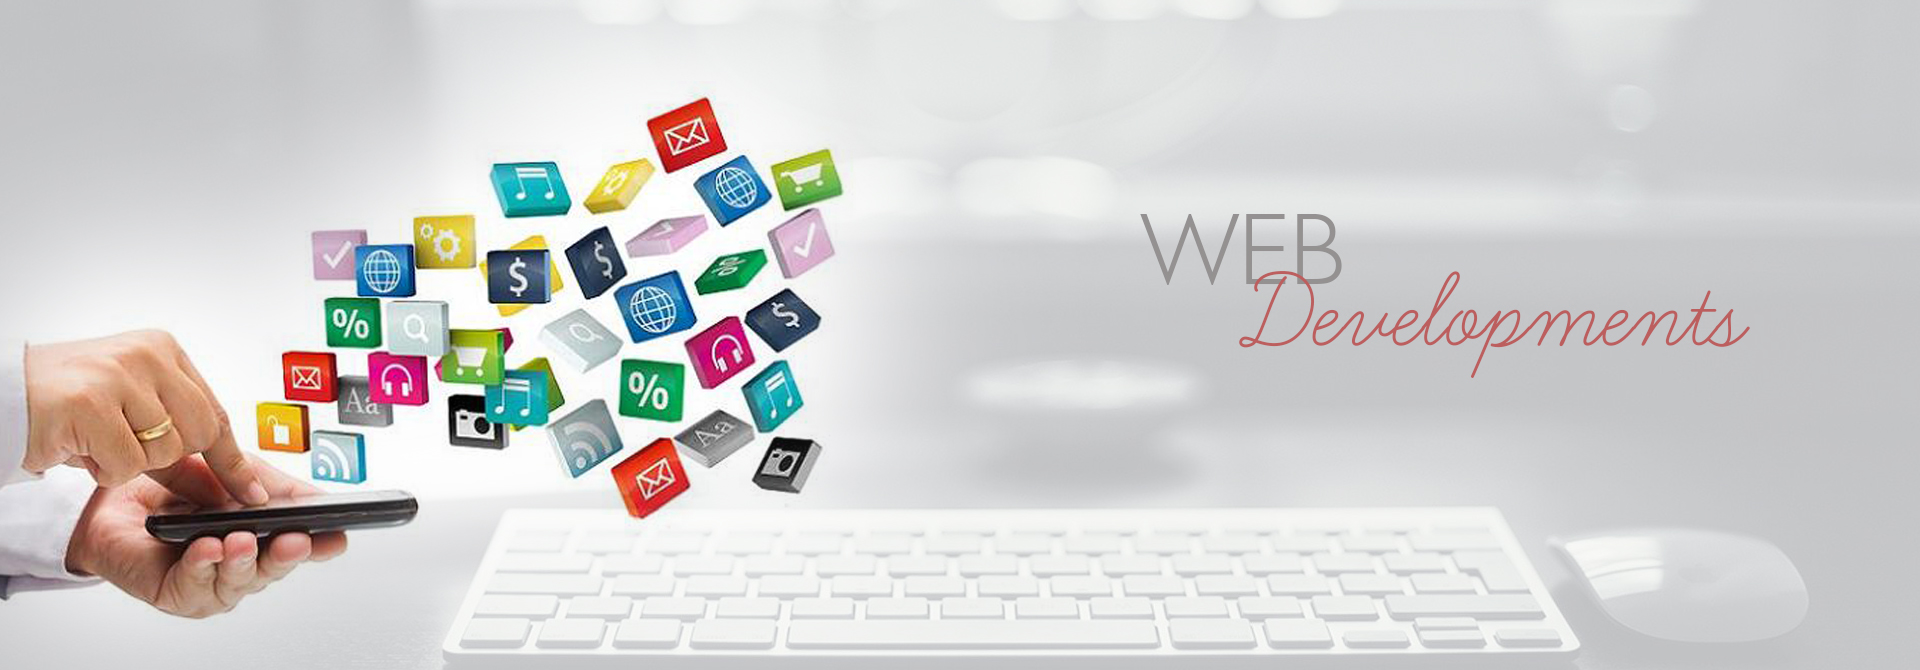 web development services in dubai